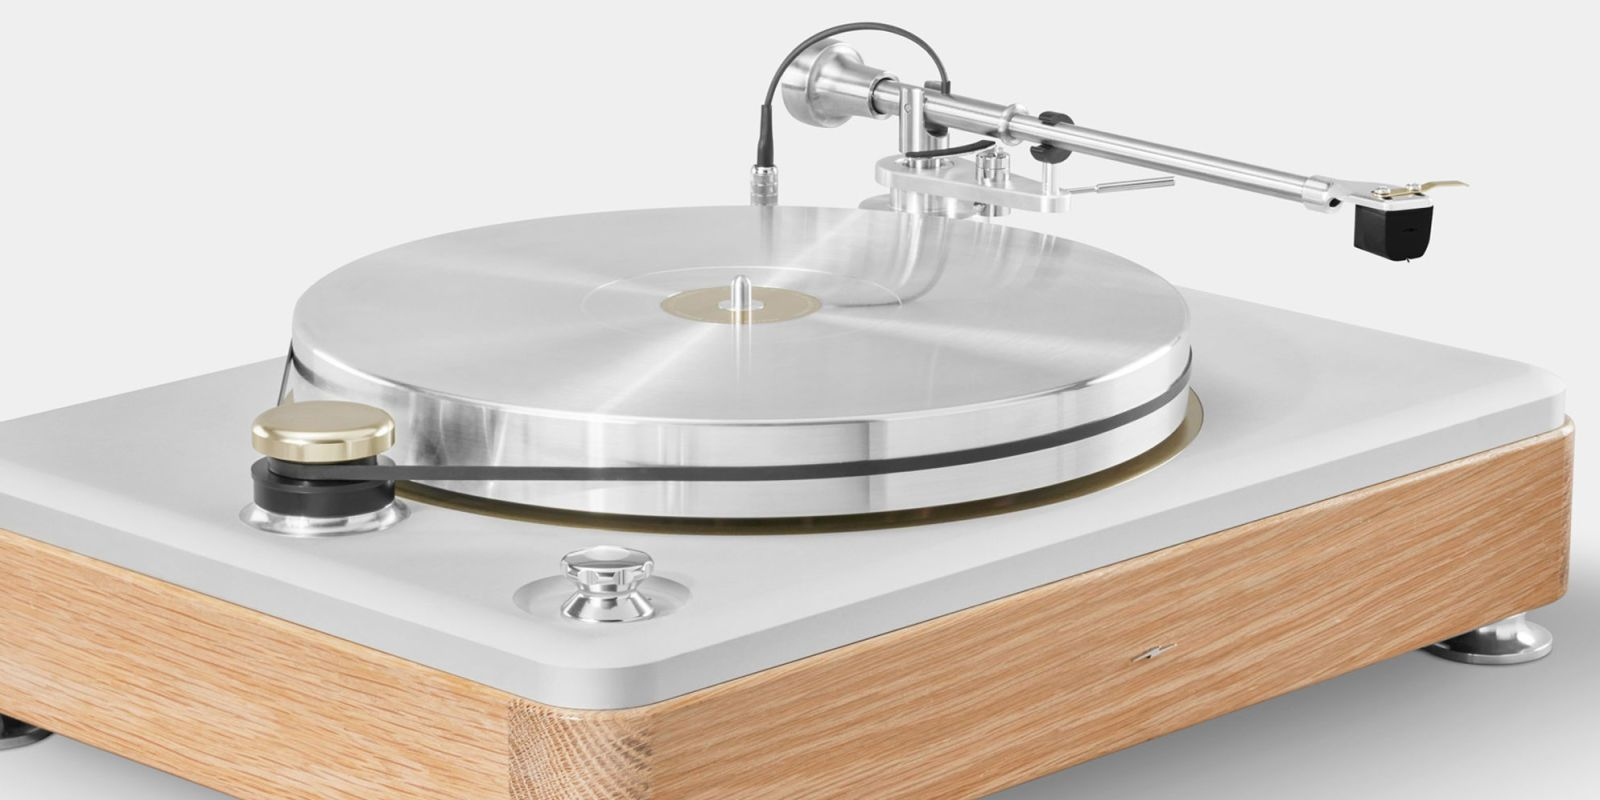 Genial Shinola Runwell Turntable   Are Super Stylish Turntables Officially ...